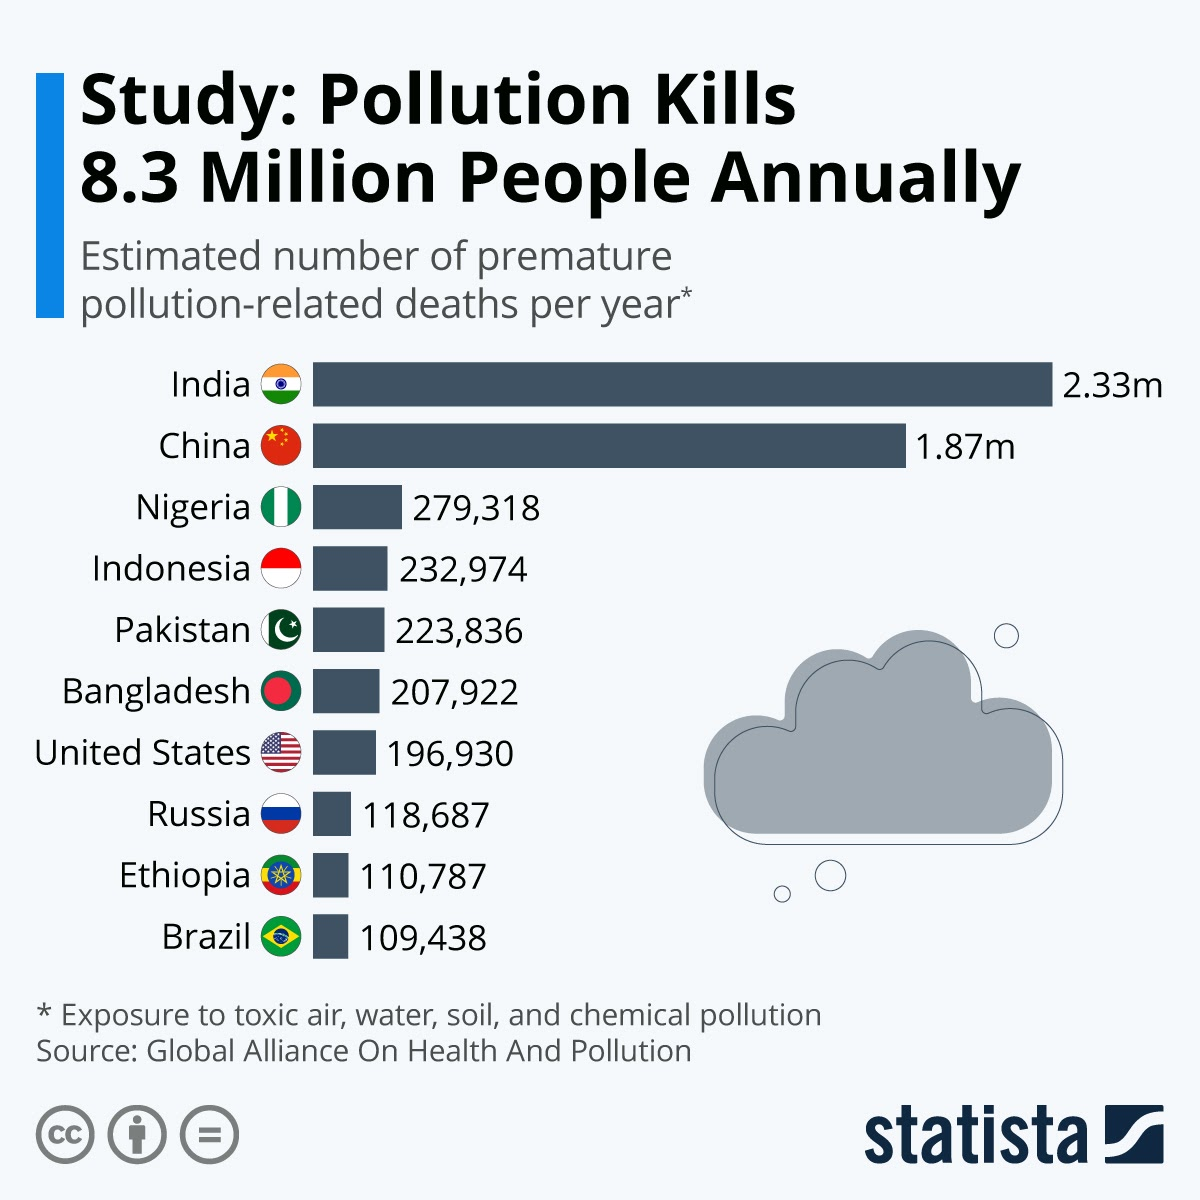 fatality-from-pollution-increases #infographic